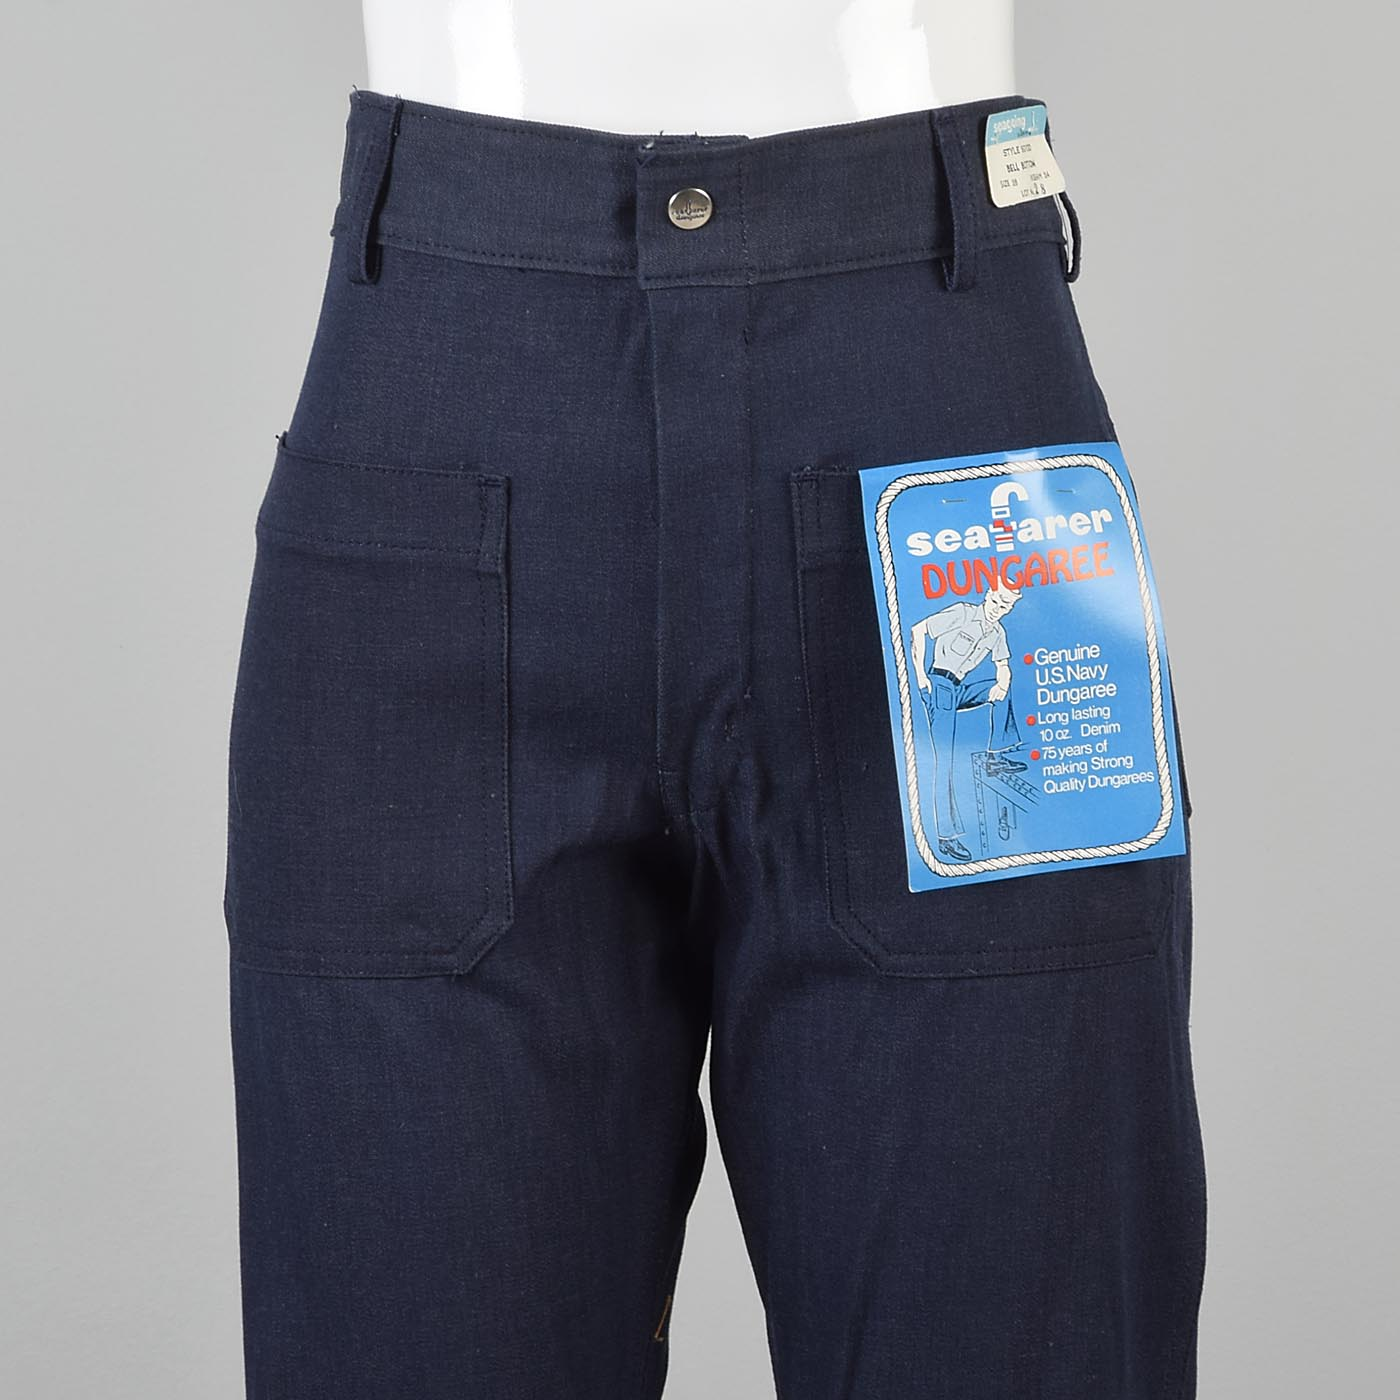 30x38 Extra Long Seafarer Bell Bottoms High Waist Indigo Denim